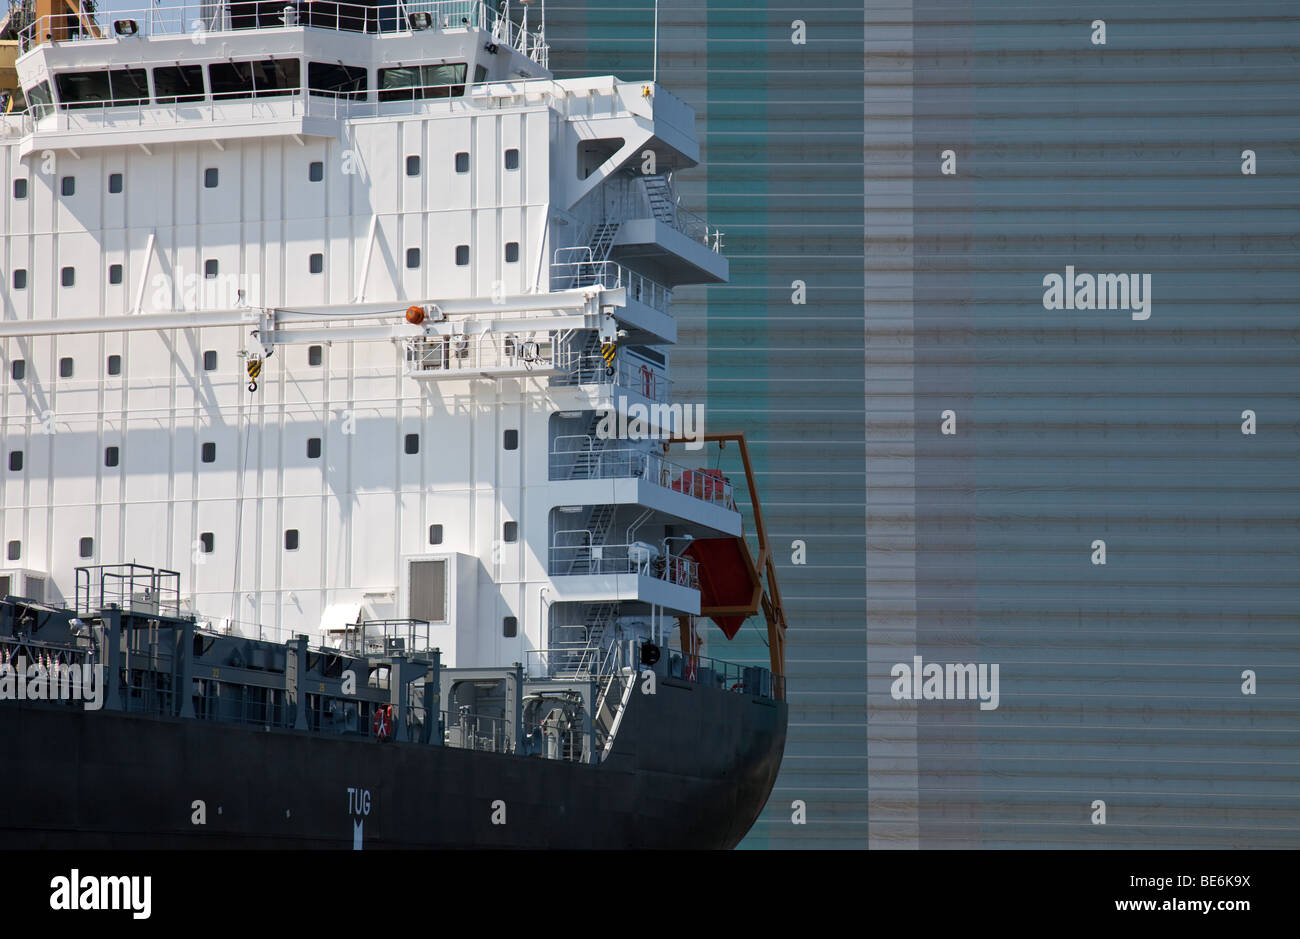 Close-up of a cargo ship in front of the shipyard in Wismar, Germany - Stock Image